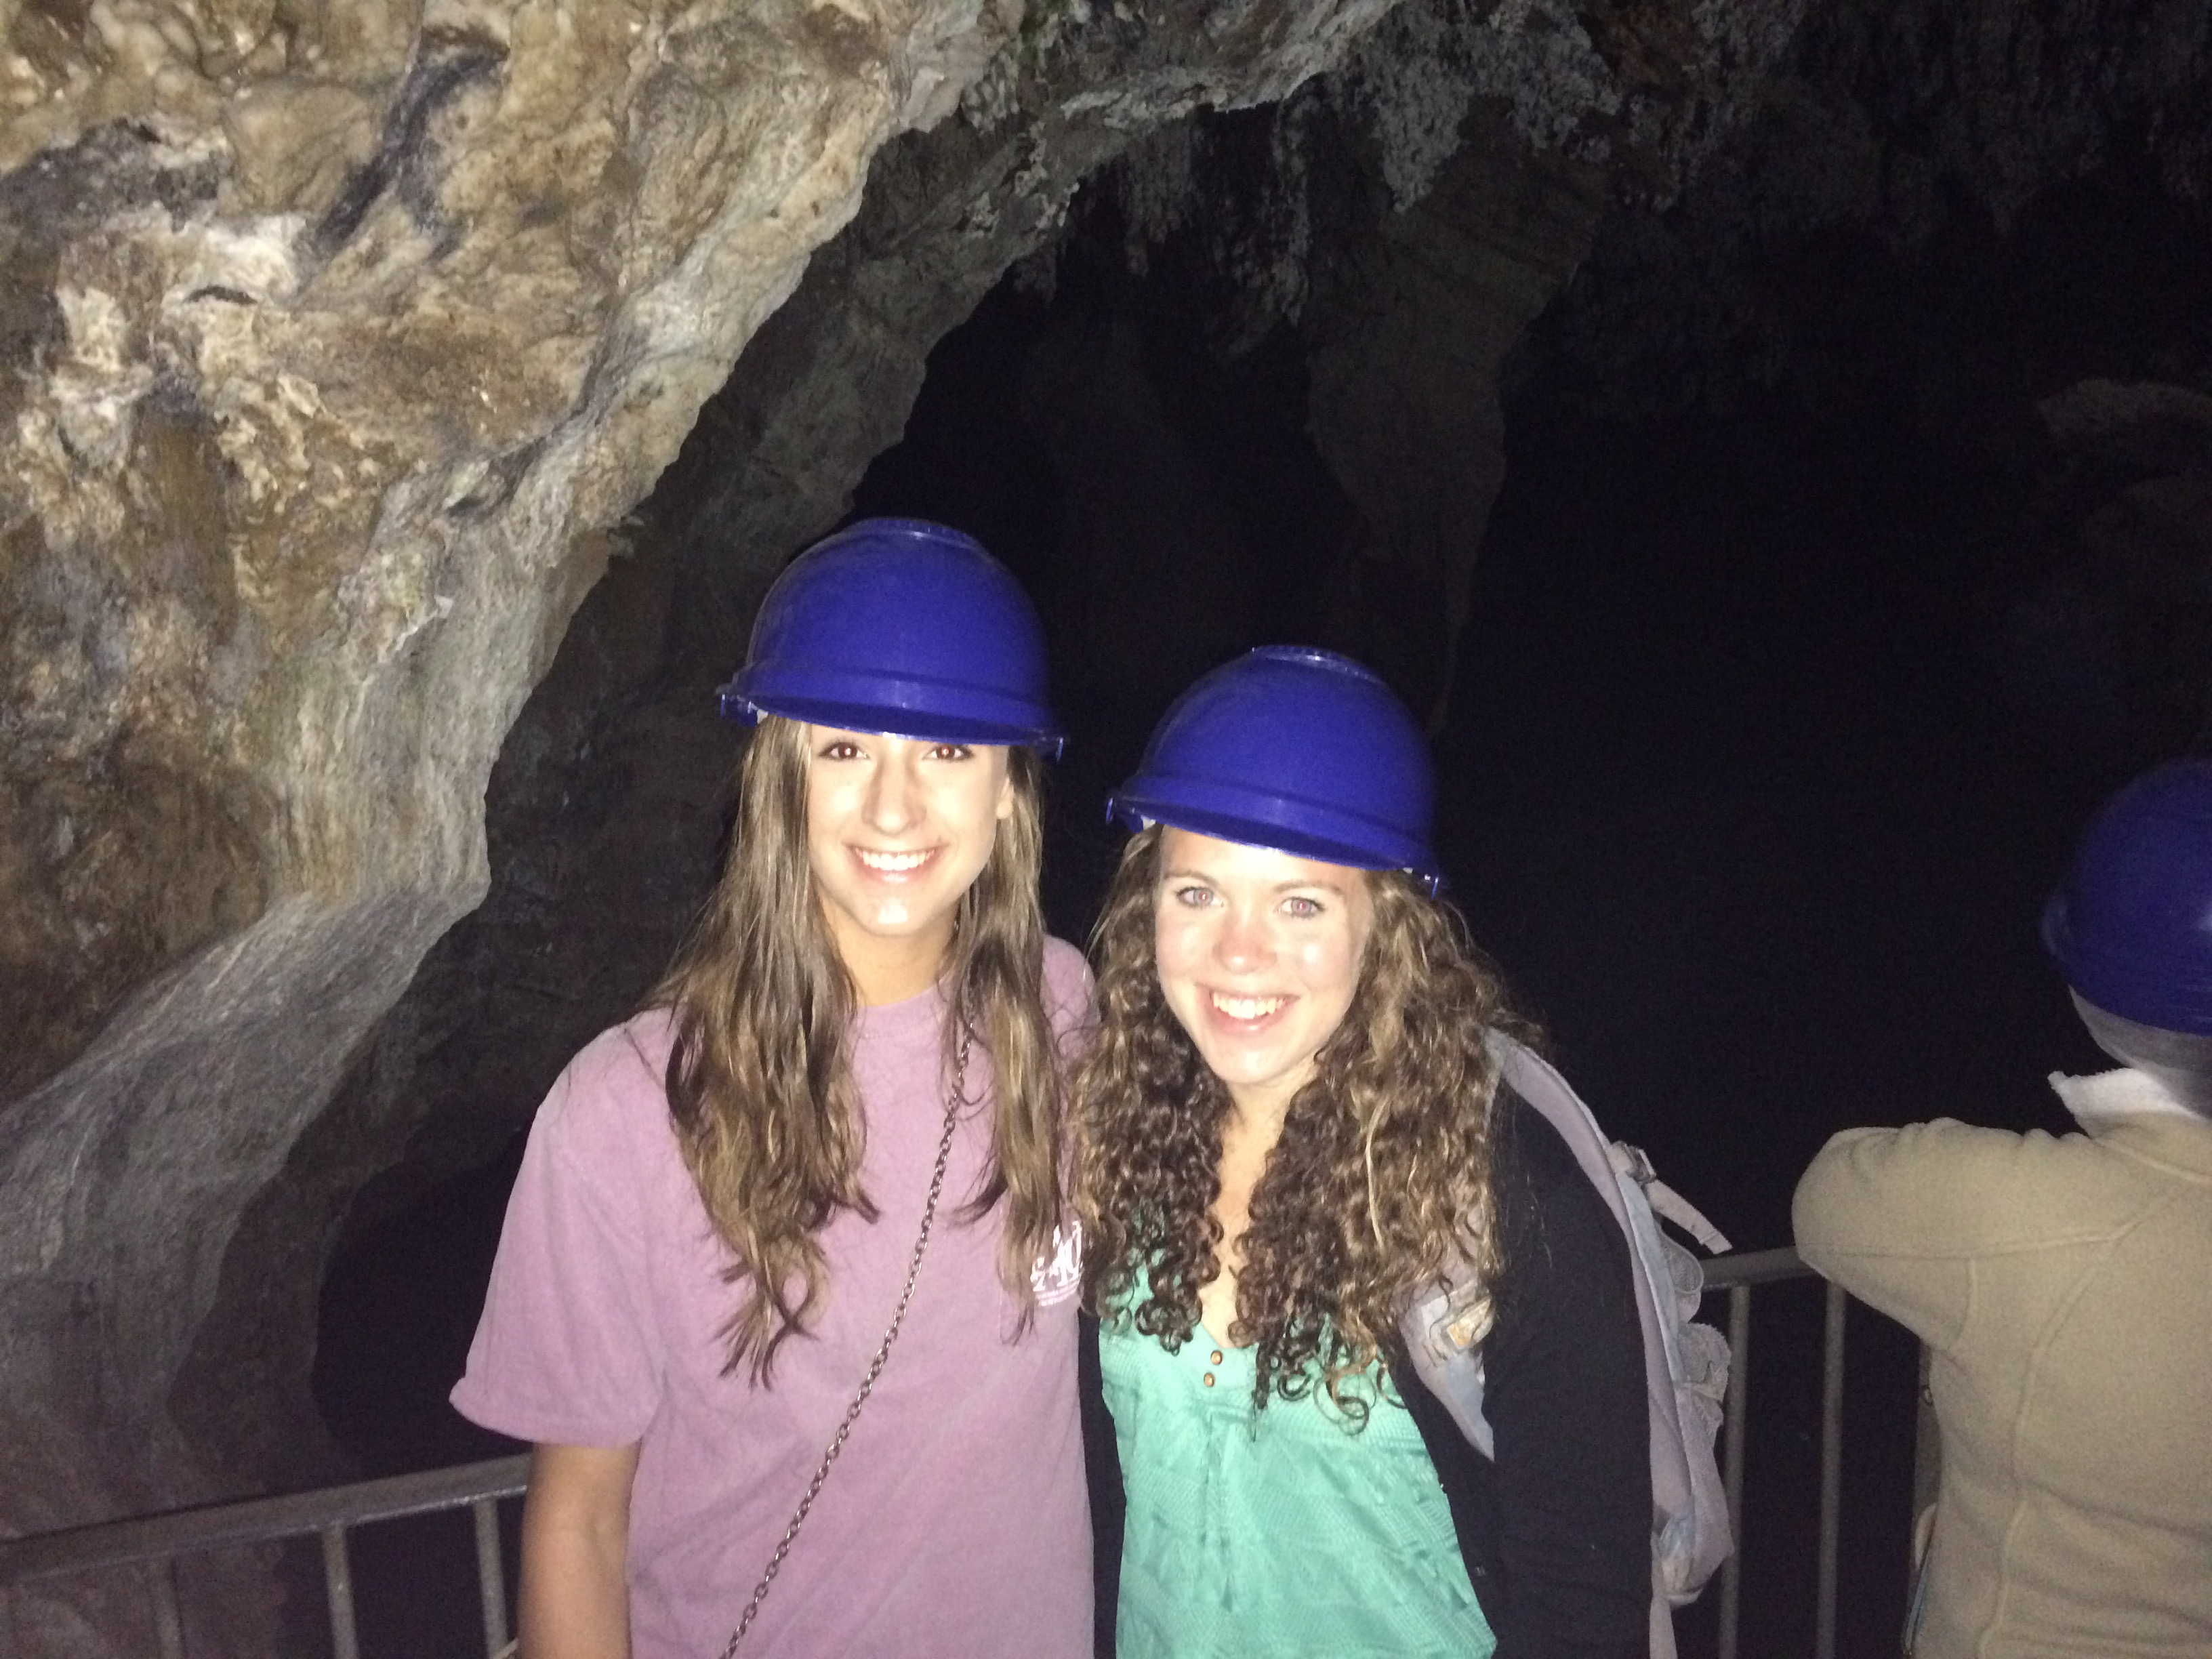 Katie Vaudo and fellow student on cave tour